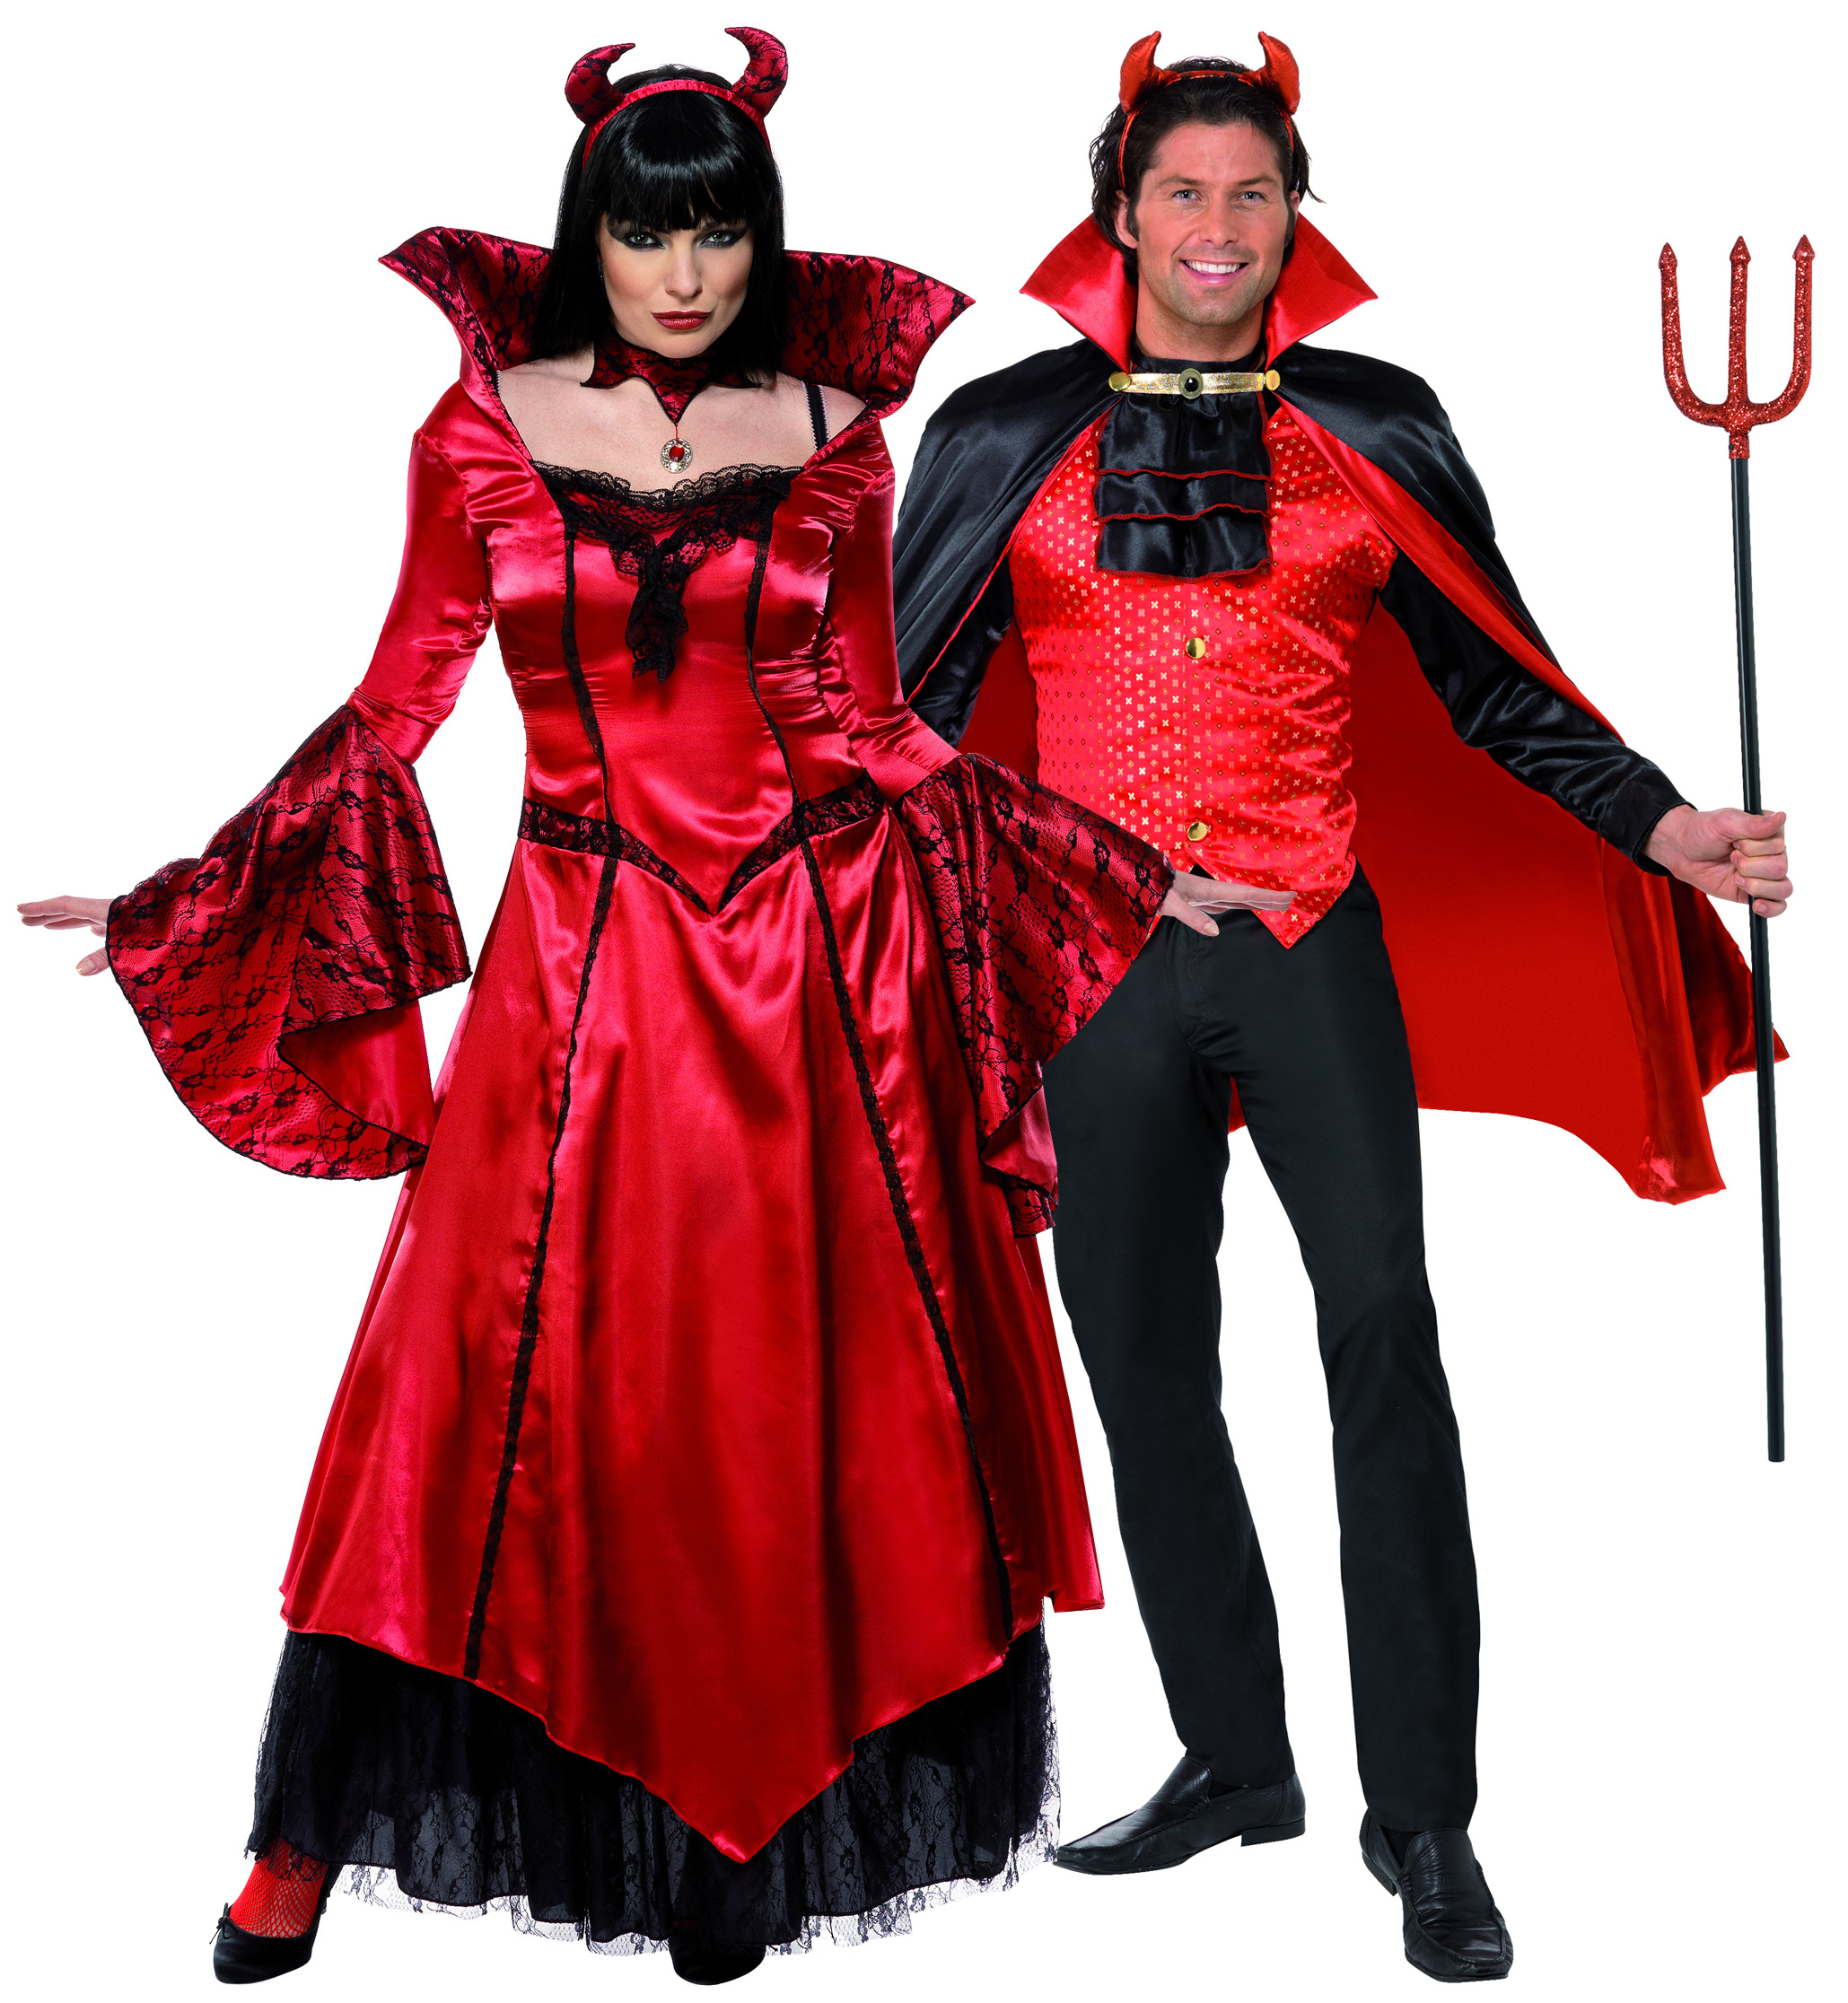 D guisement couple diable costume couple pas cher d guisement halloween - Deguisement couple halloween ...